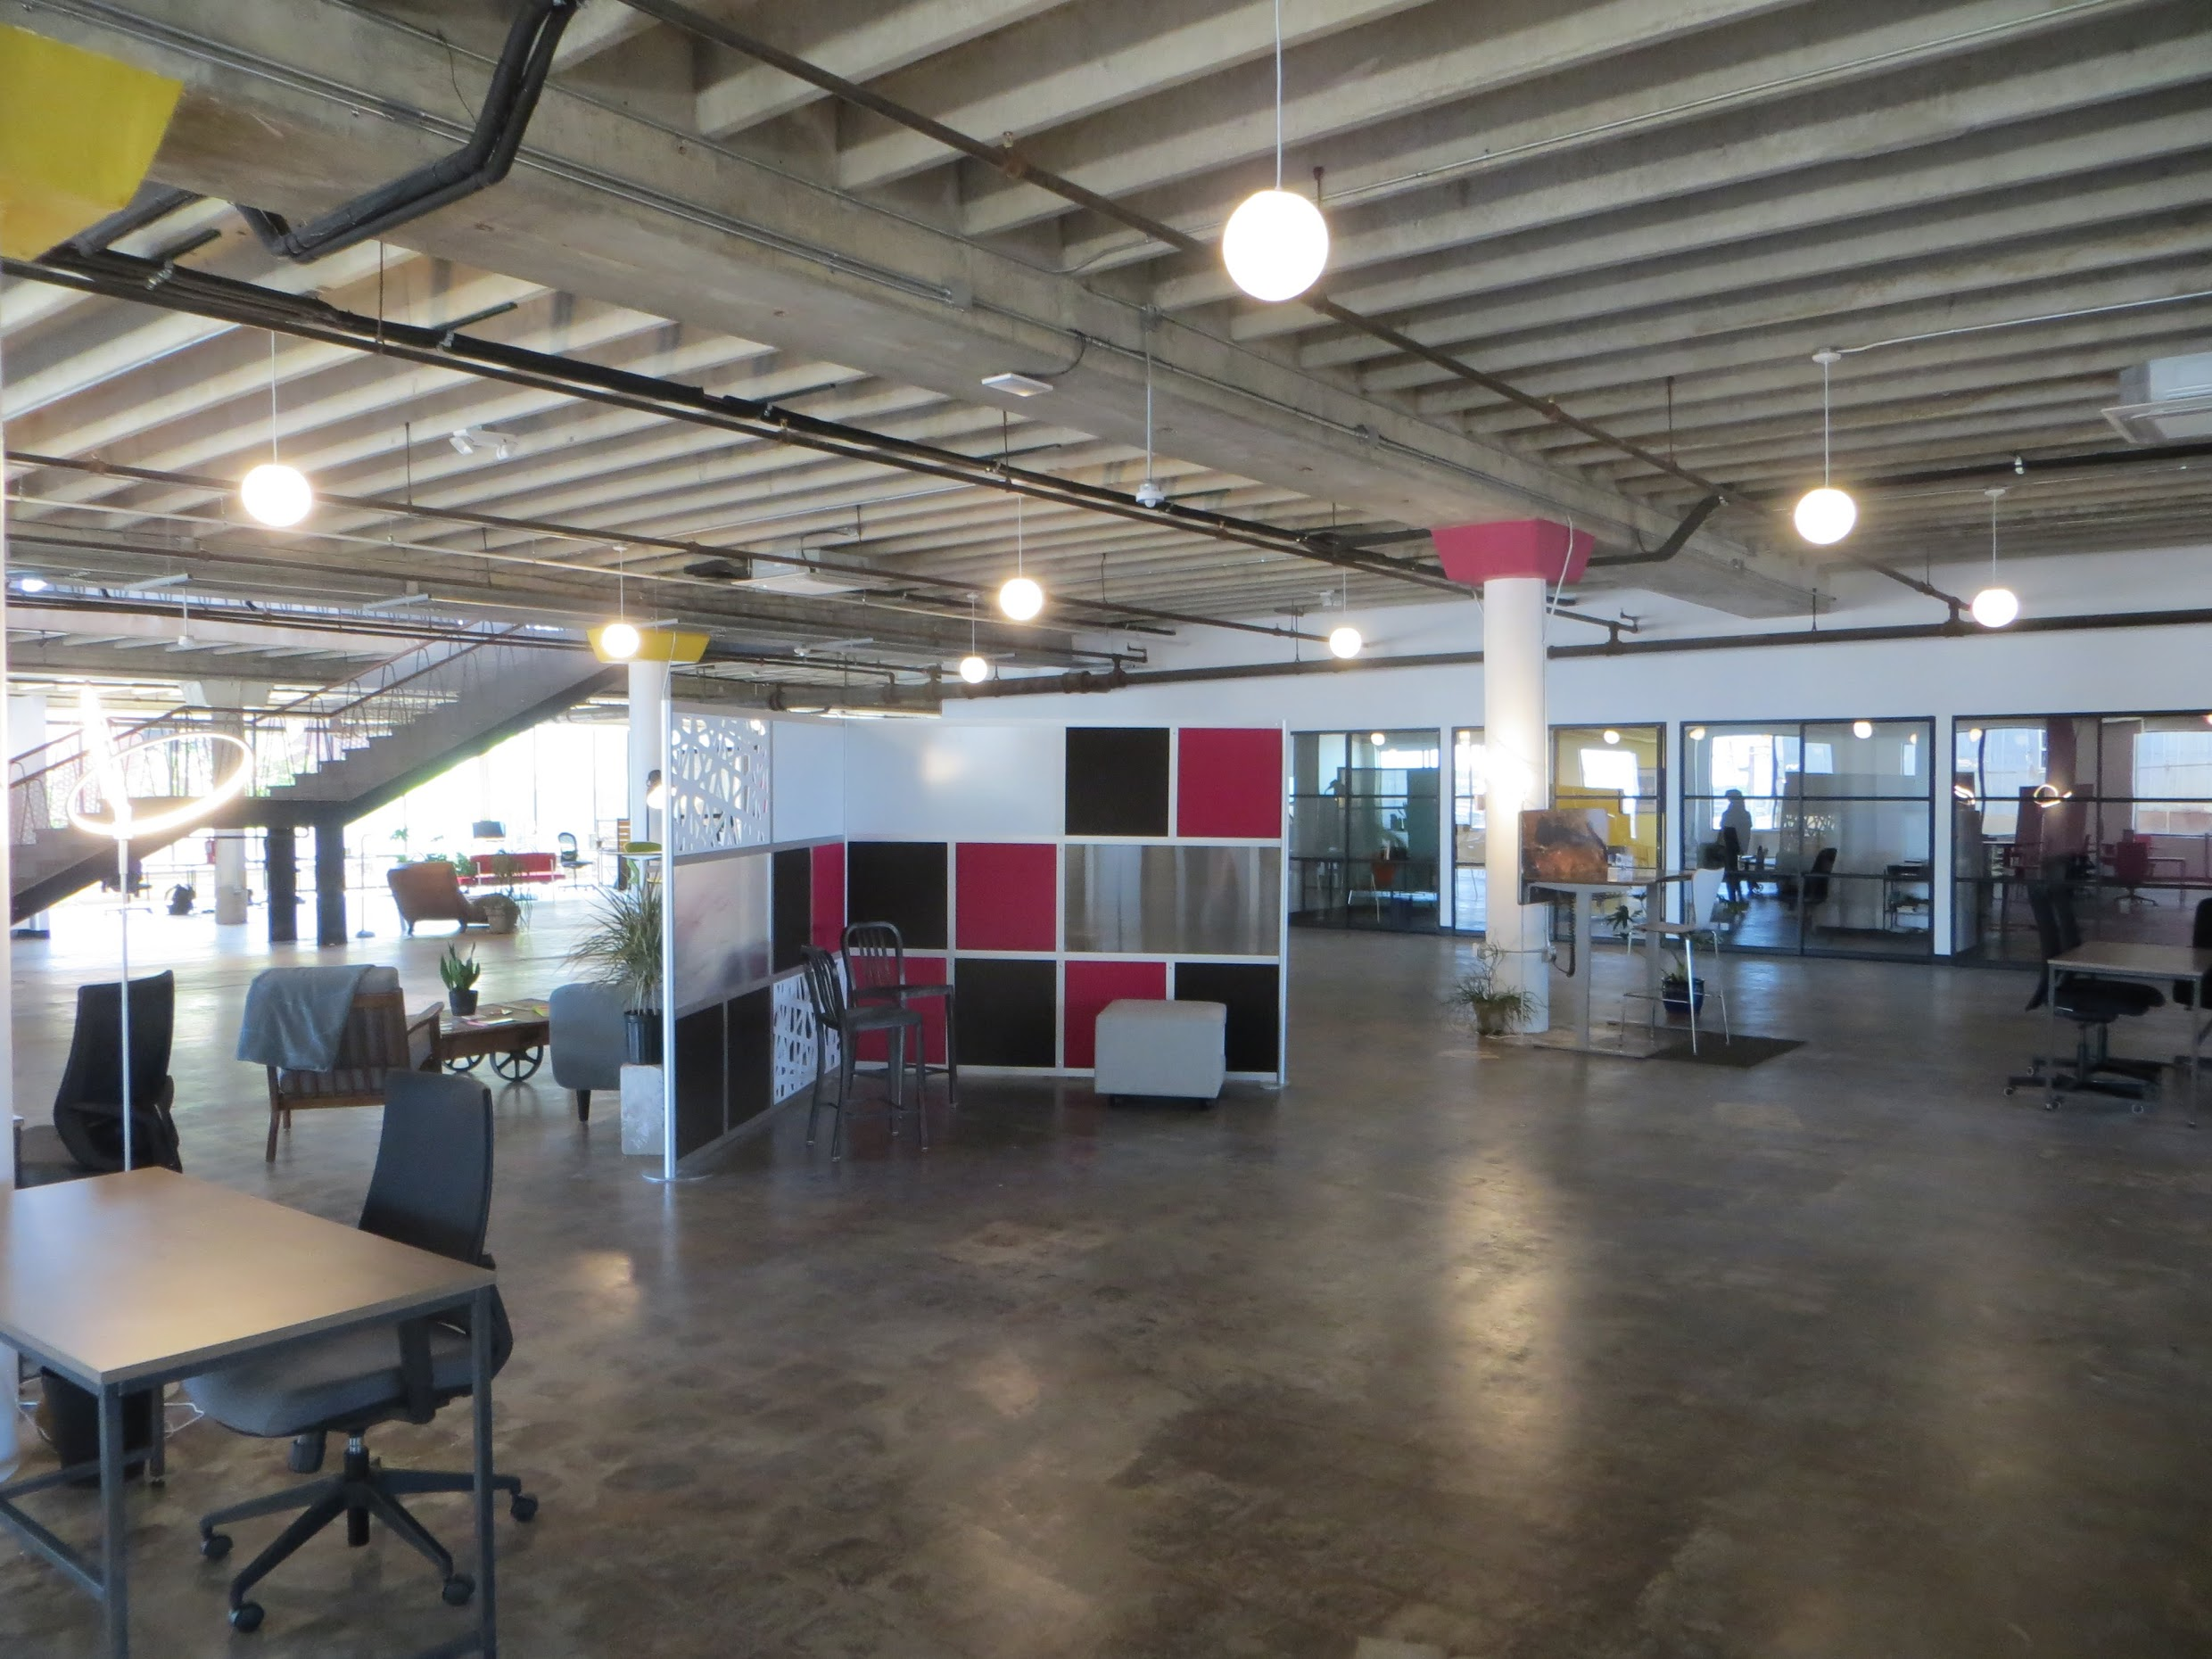 A view of the common working area. This is where our staff will be able to find places to work and collaborate.